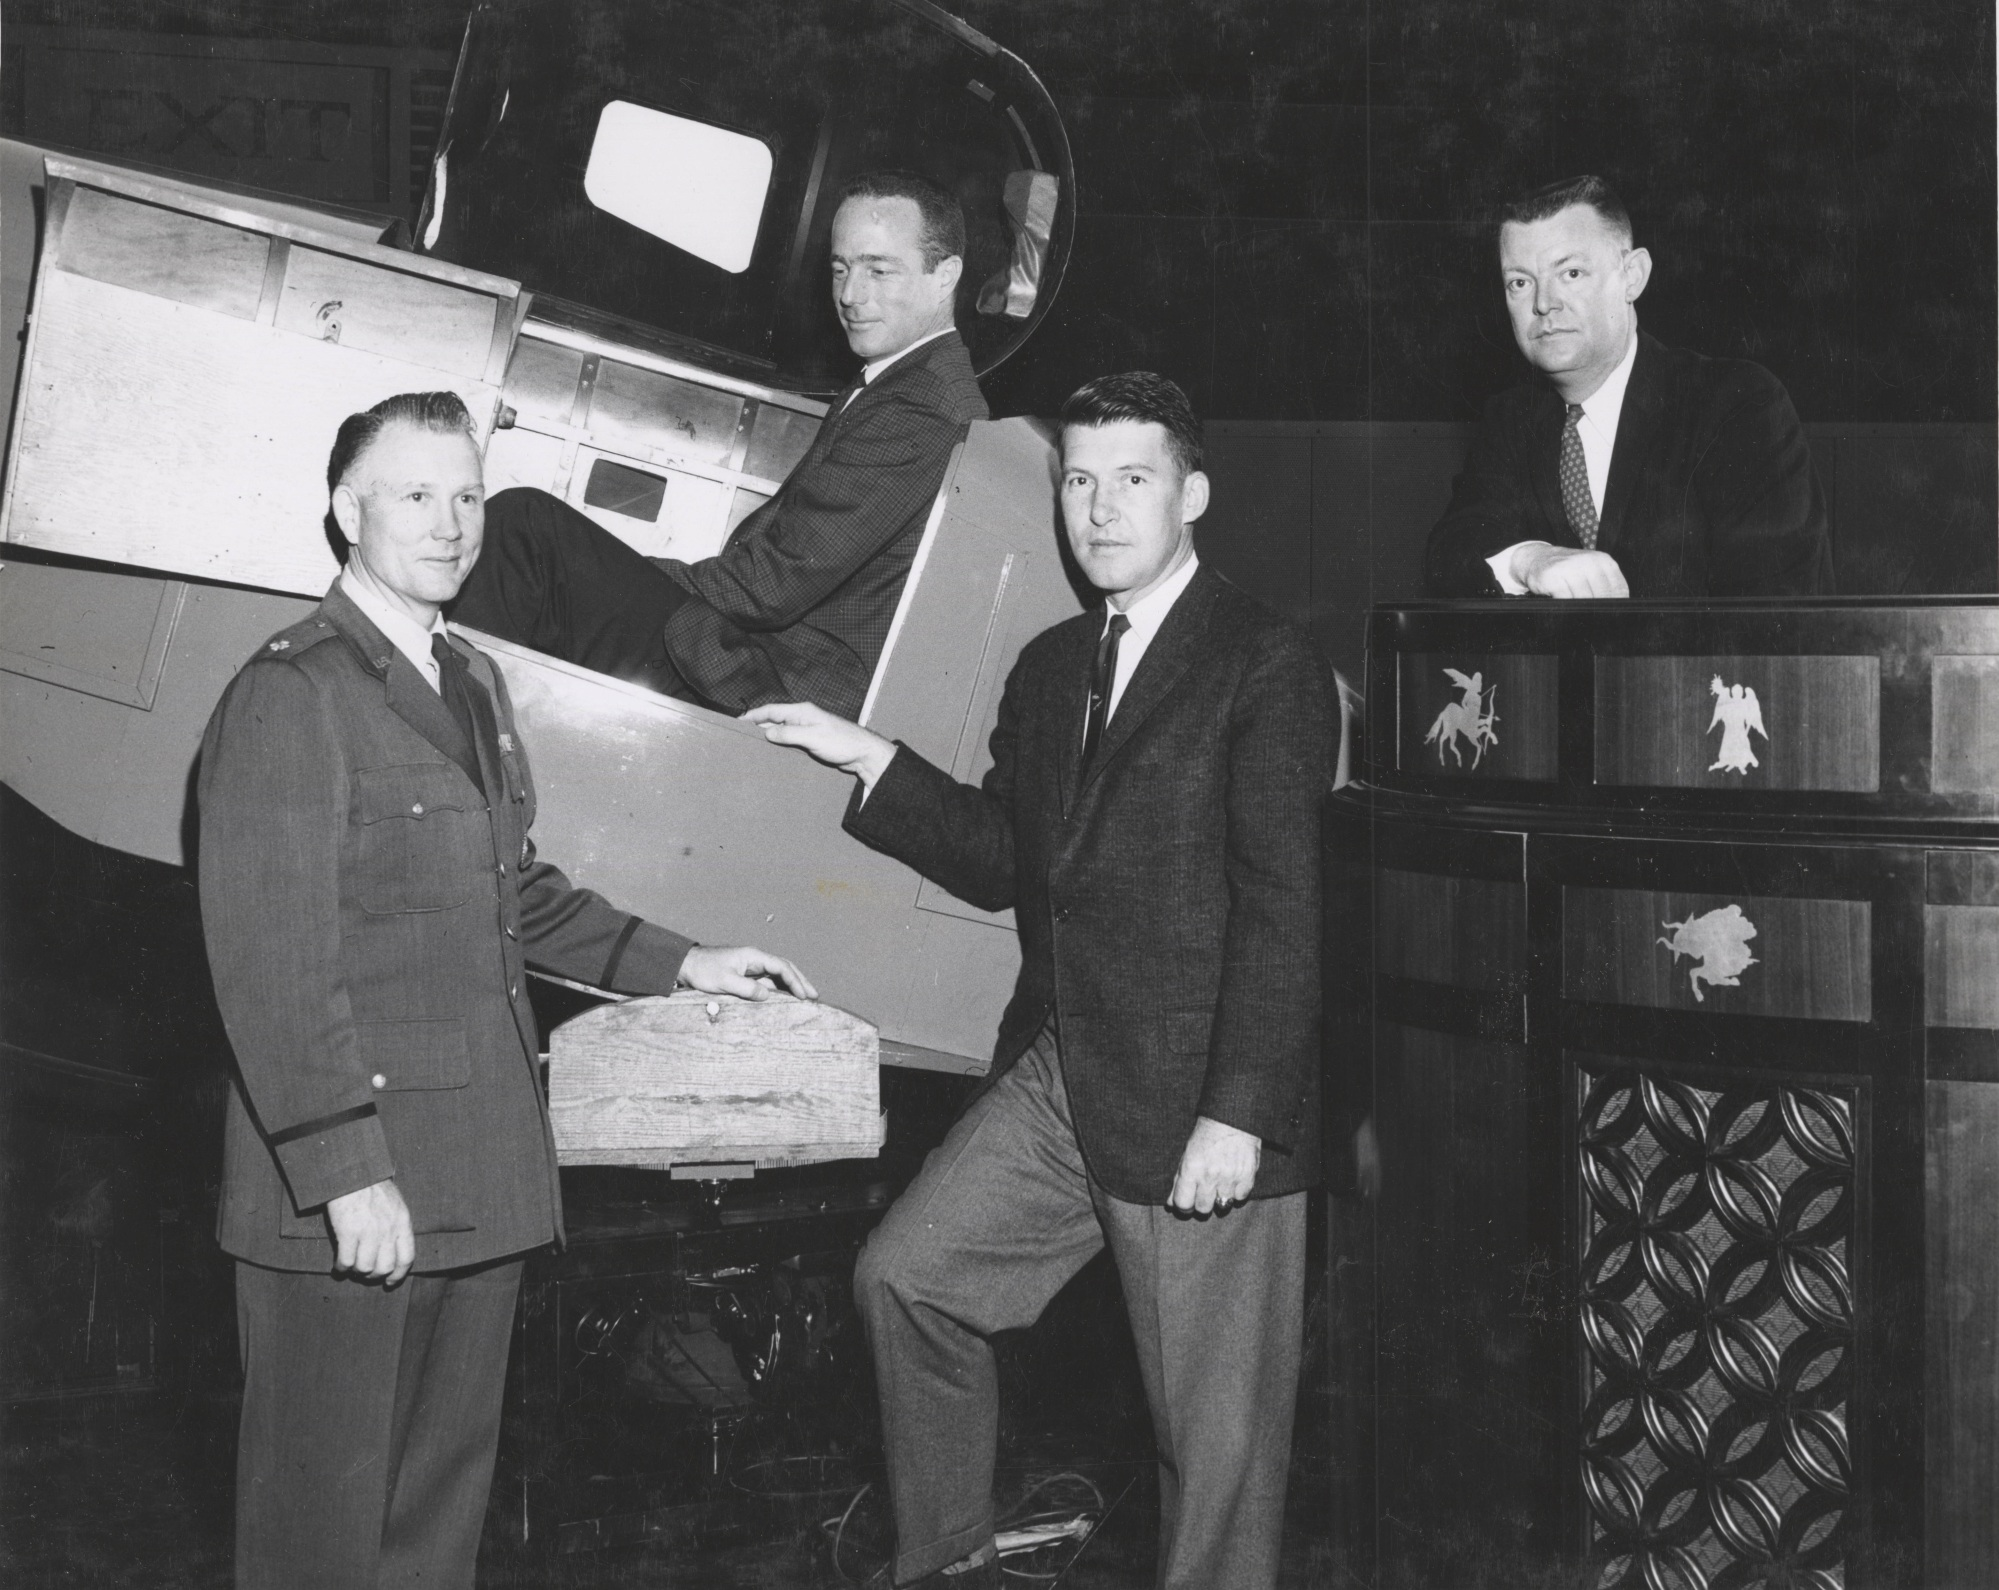 Photograph of Col. Cage, Scott Carpenter (in a Link trainer), Wally Schirra, and Morehead astronaut trainer James Batten. Photo courtesy of UNC Photographic Lab via Wilson Library digital collection.